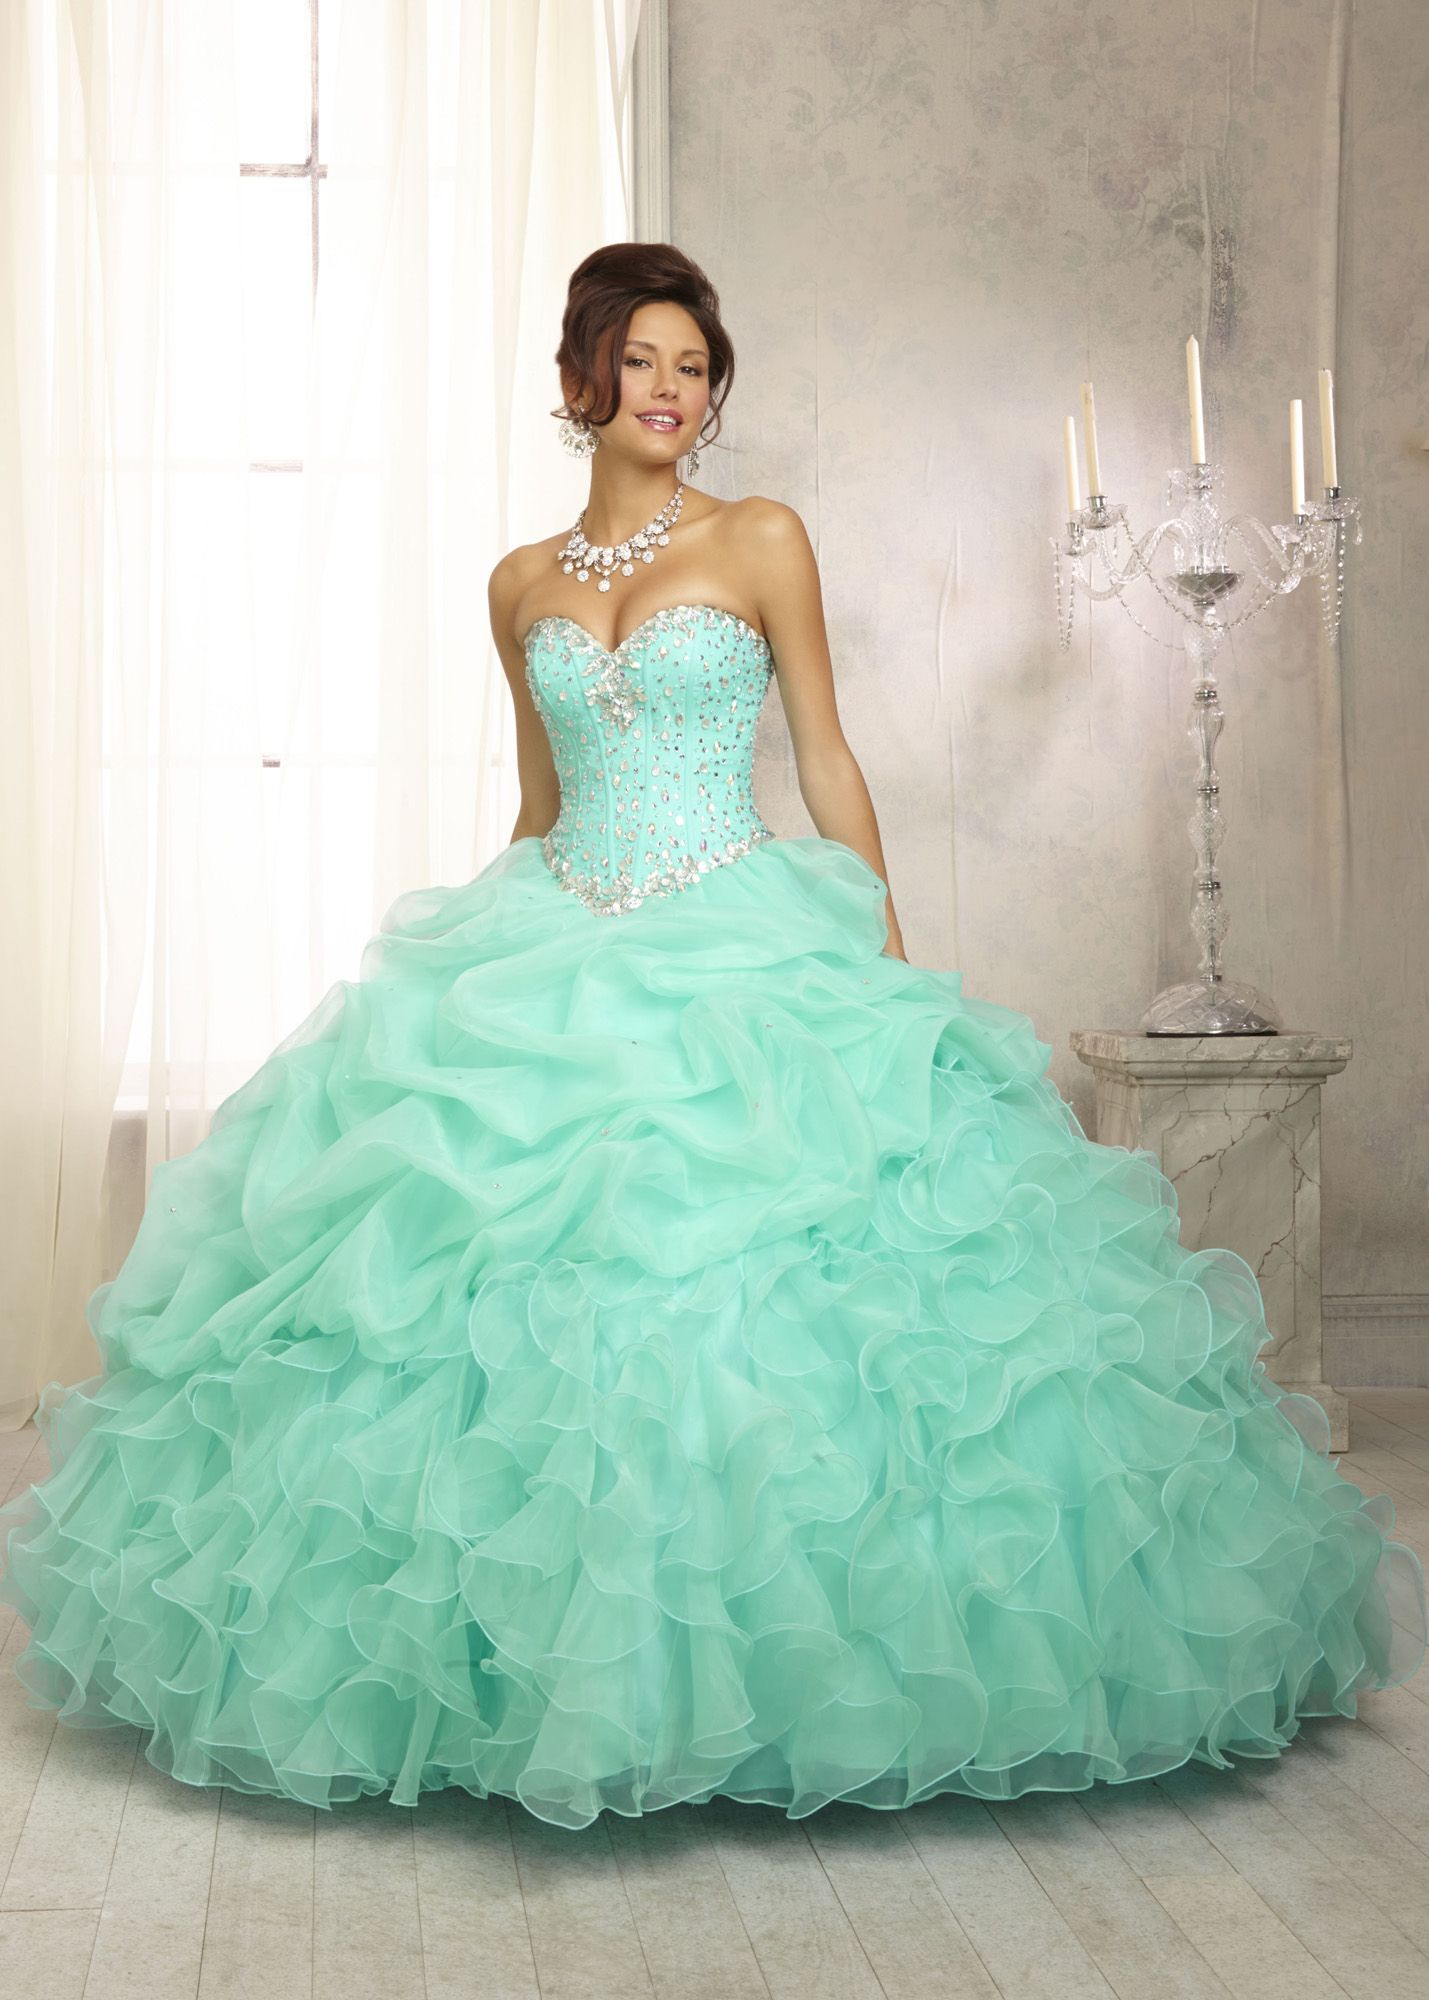 Green mint with gold quinceanera dresses forecast dress in autumn in 2019